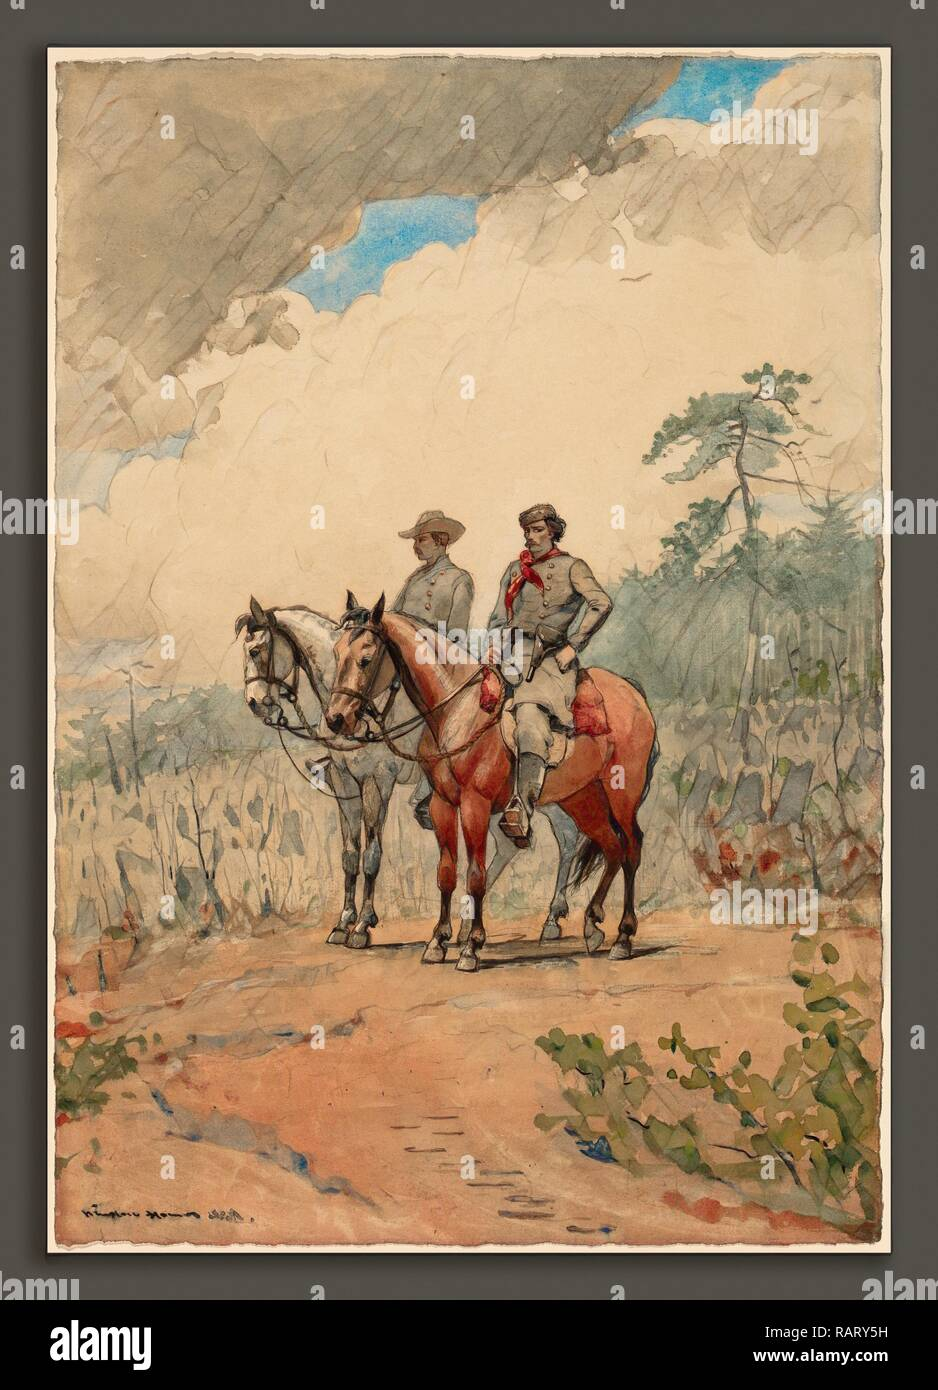 Winslow Homer, Two Scouts, American, 1836 - 1910, 1887, watercolor over graphite on wove paper. Reimagined - Stock Image